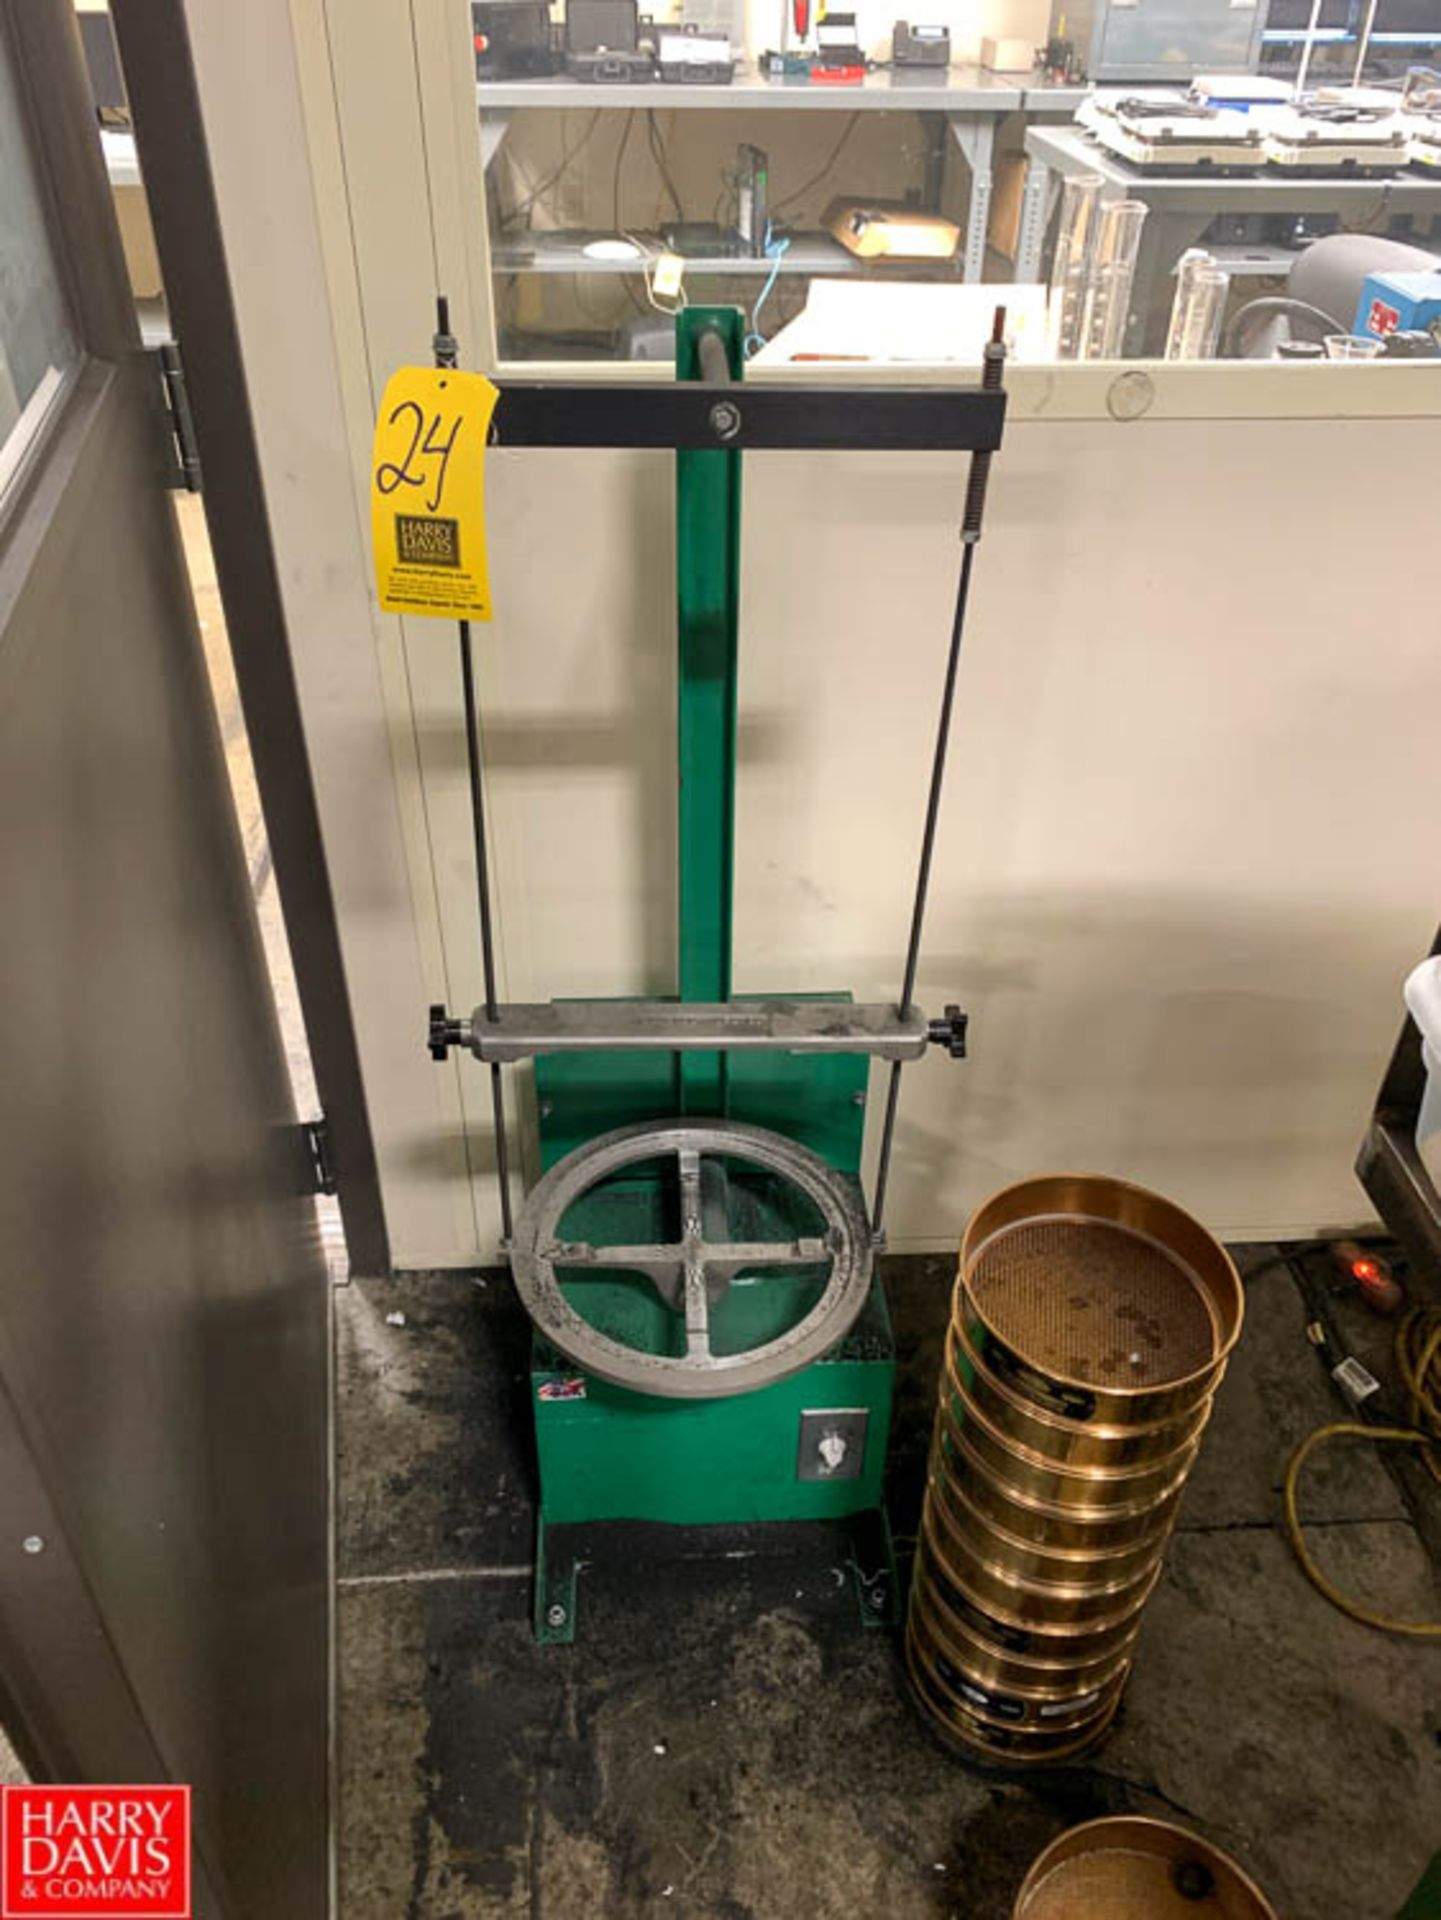 Lot 24 - Dual Sieve Shaker, Model D-4330, with (28) Sieves Rigging Fee: 150